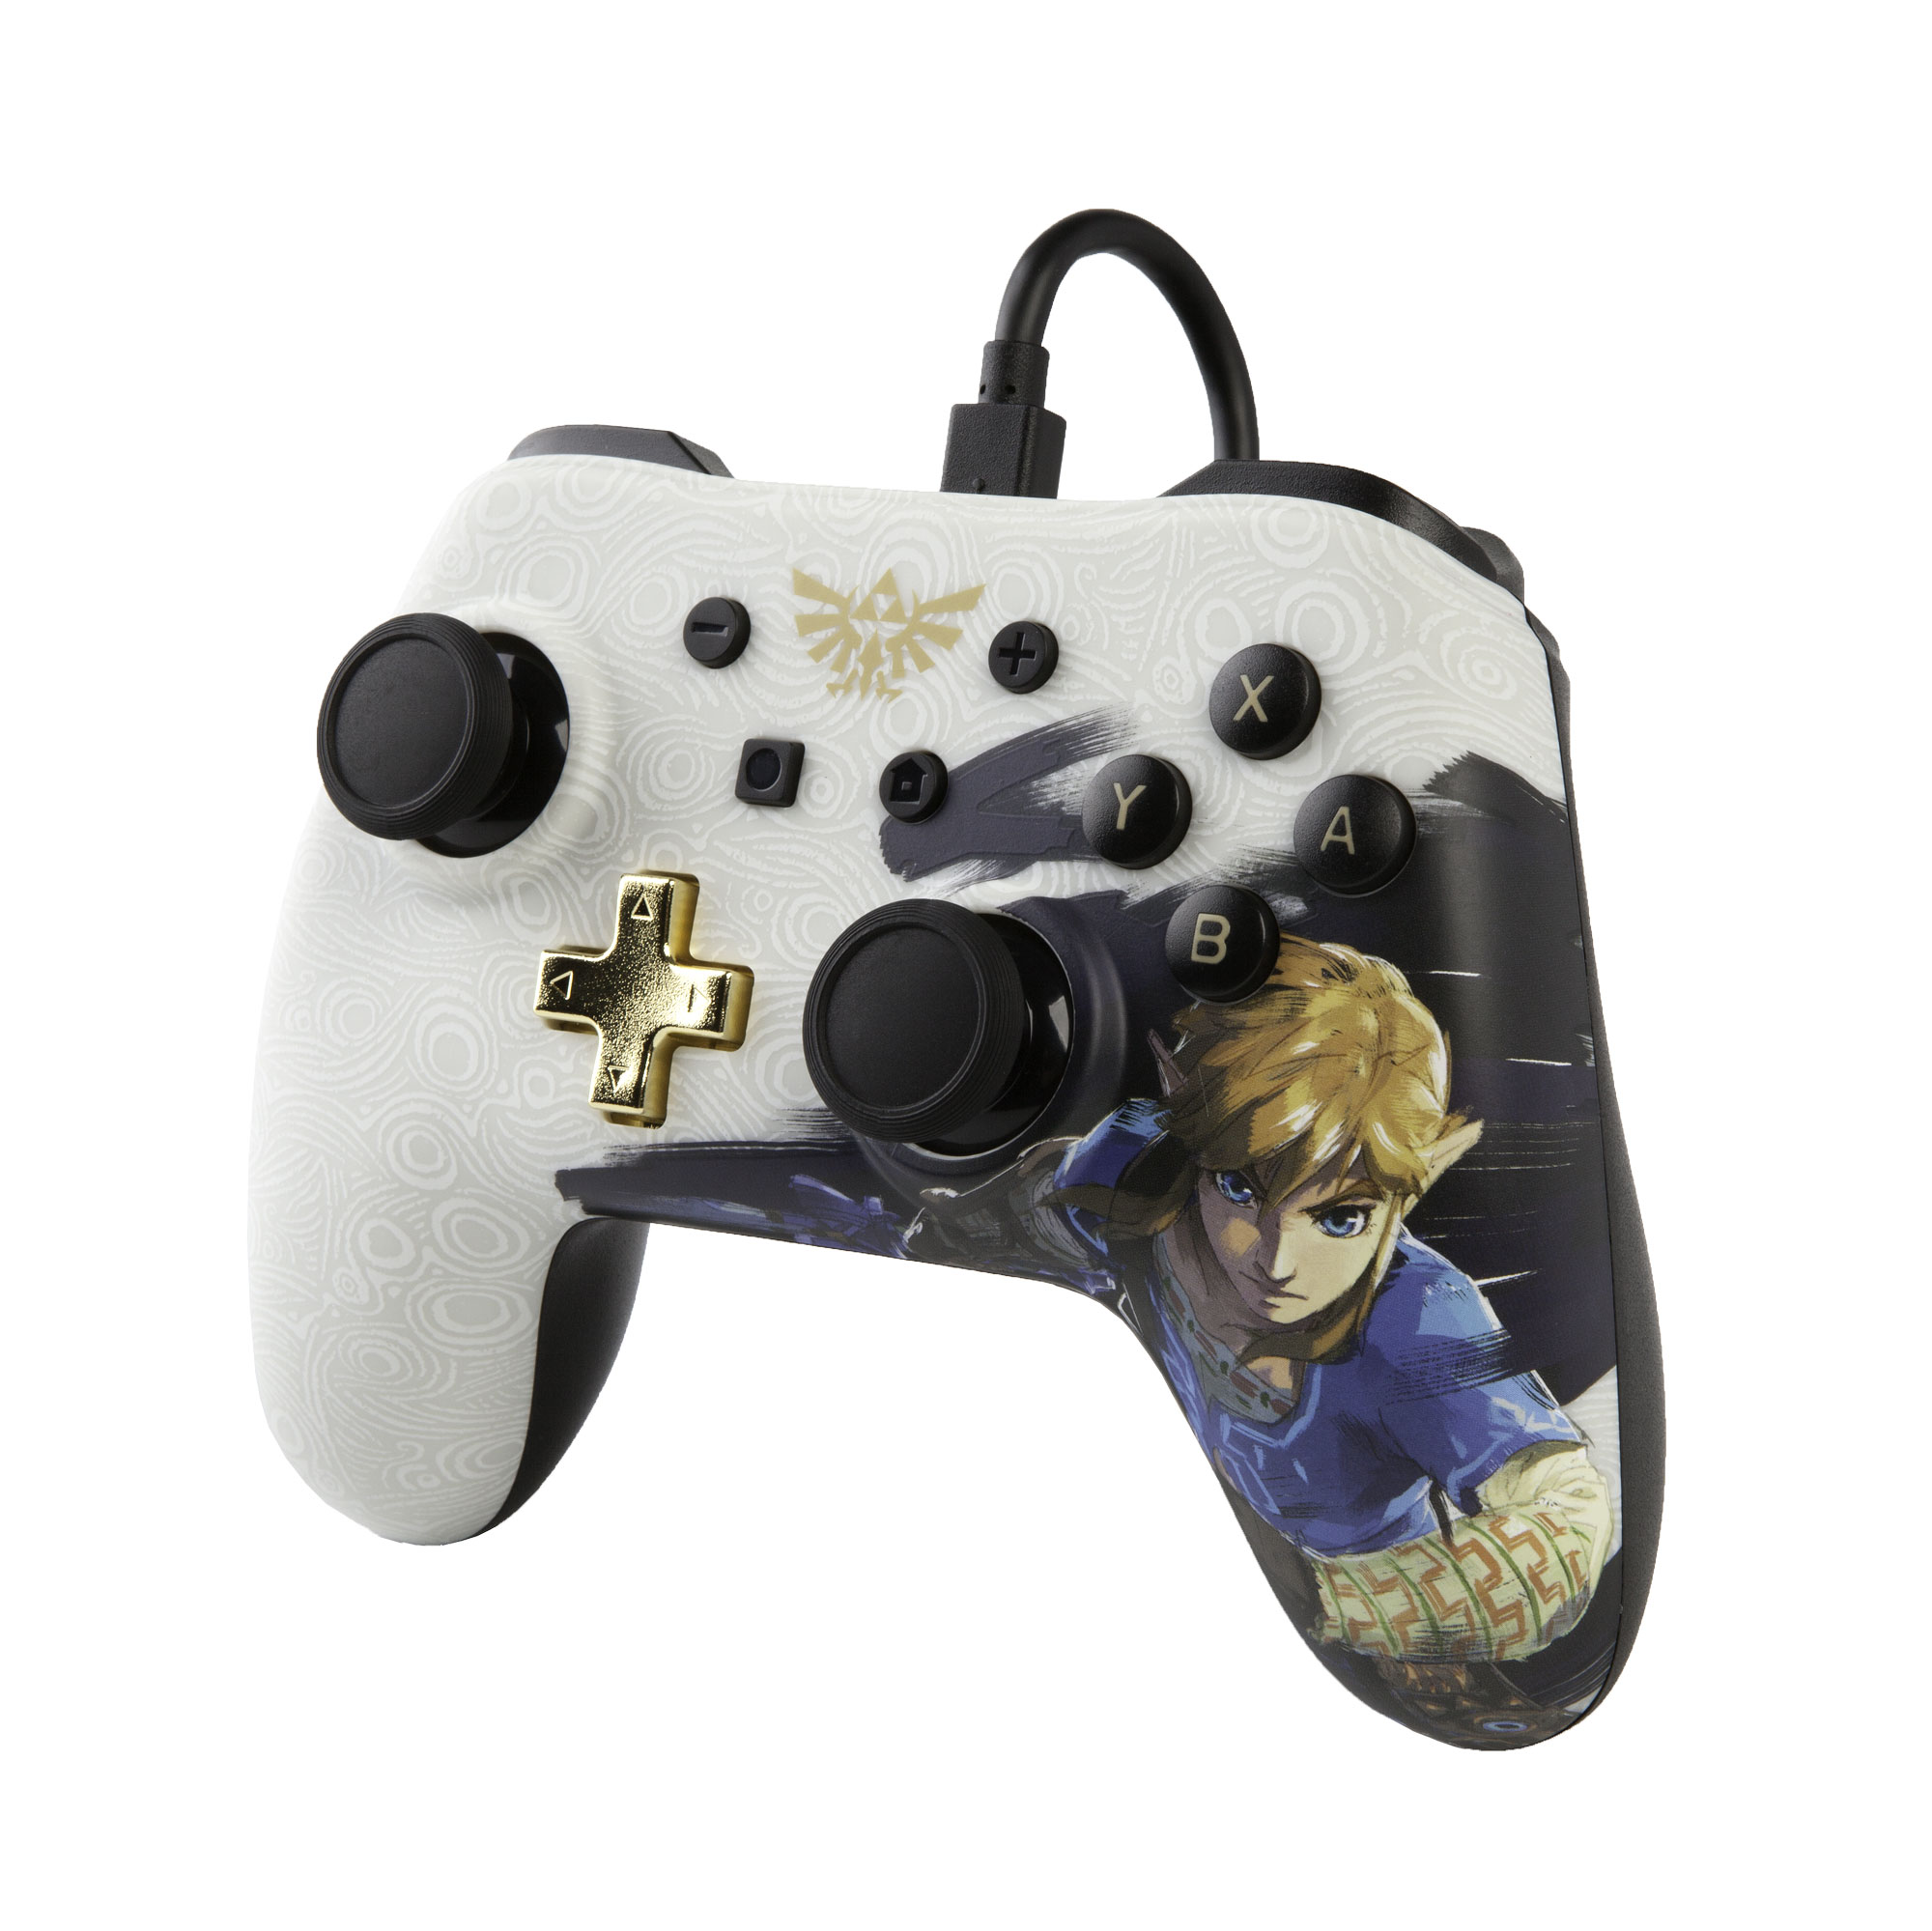 PowerA Wired Controller for Nintendo Switch - Link (1506260-02)